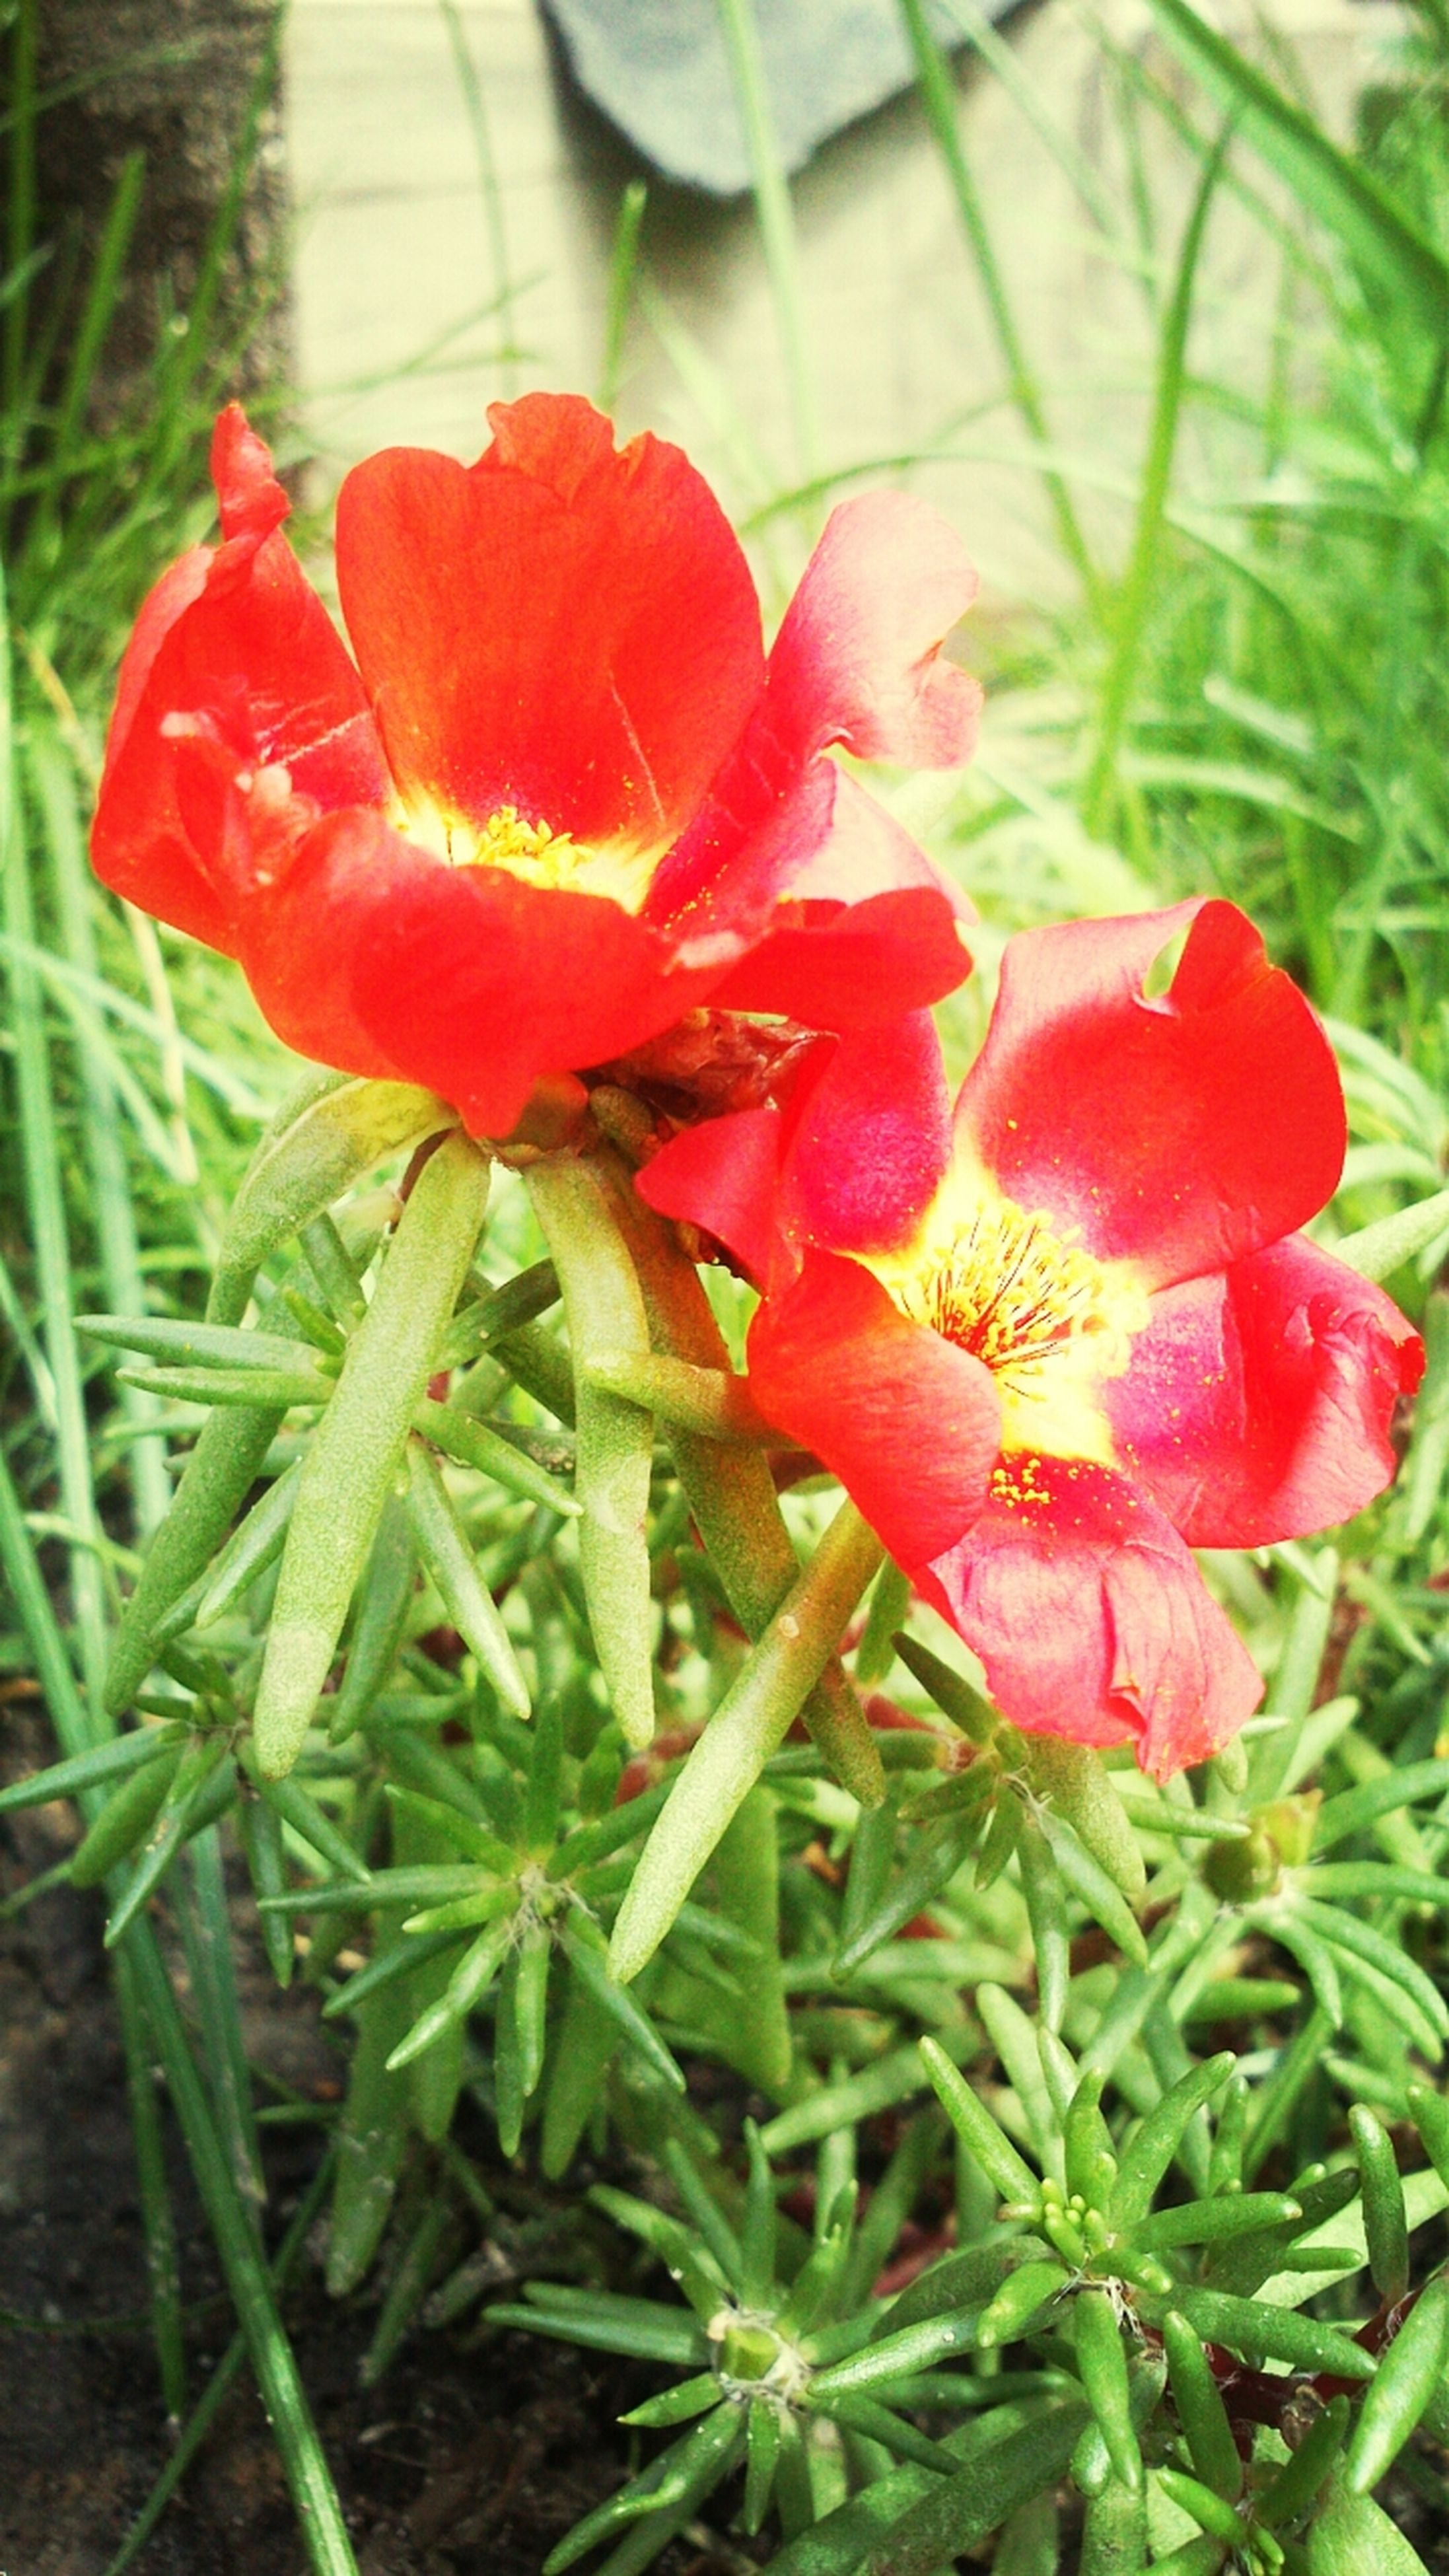 flower, freshness, red, petal, growth, fragility, flower head, plant, beauty in nature, nature, blooming, close-up, focus on foreground, field, green color, in bloom, leaf, poppy, day, high angle view